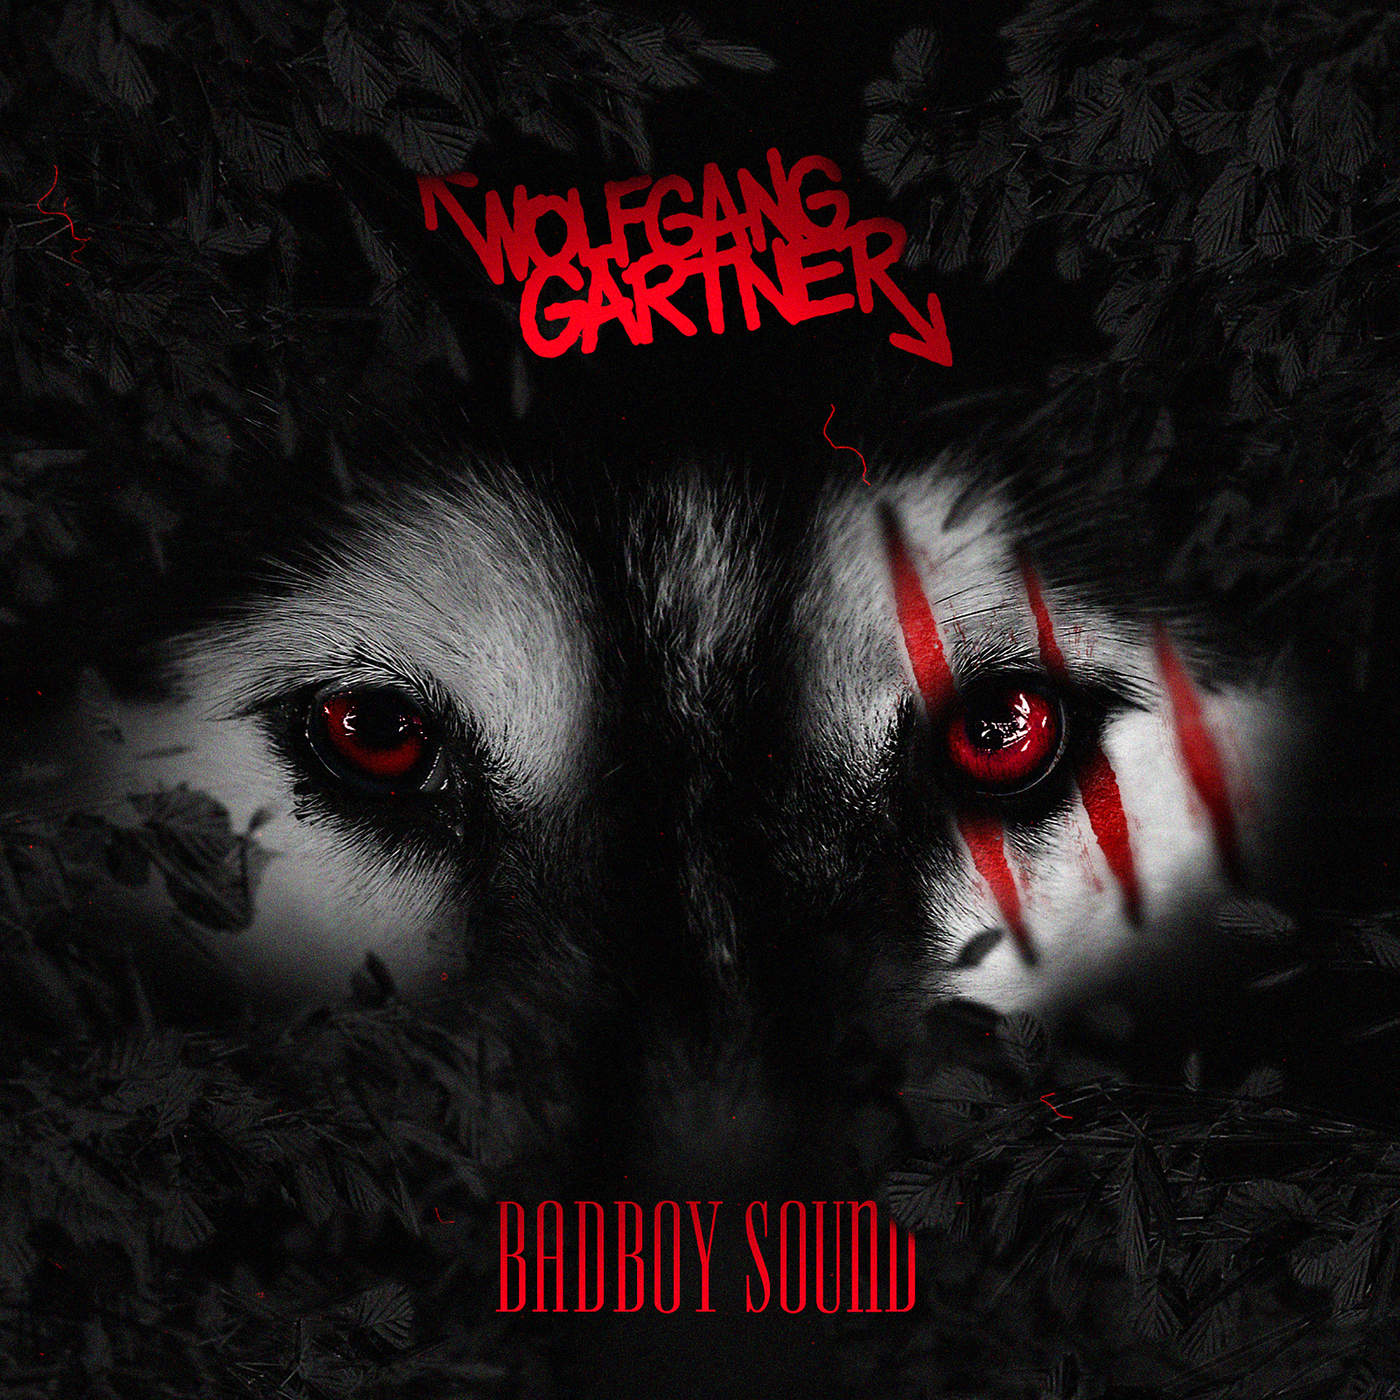 Wolfgang Gartner - Badboy Sound - Single Cover